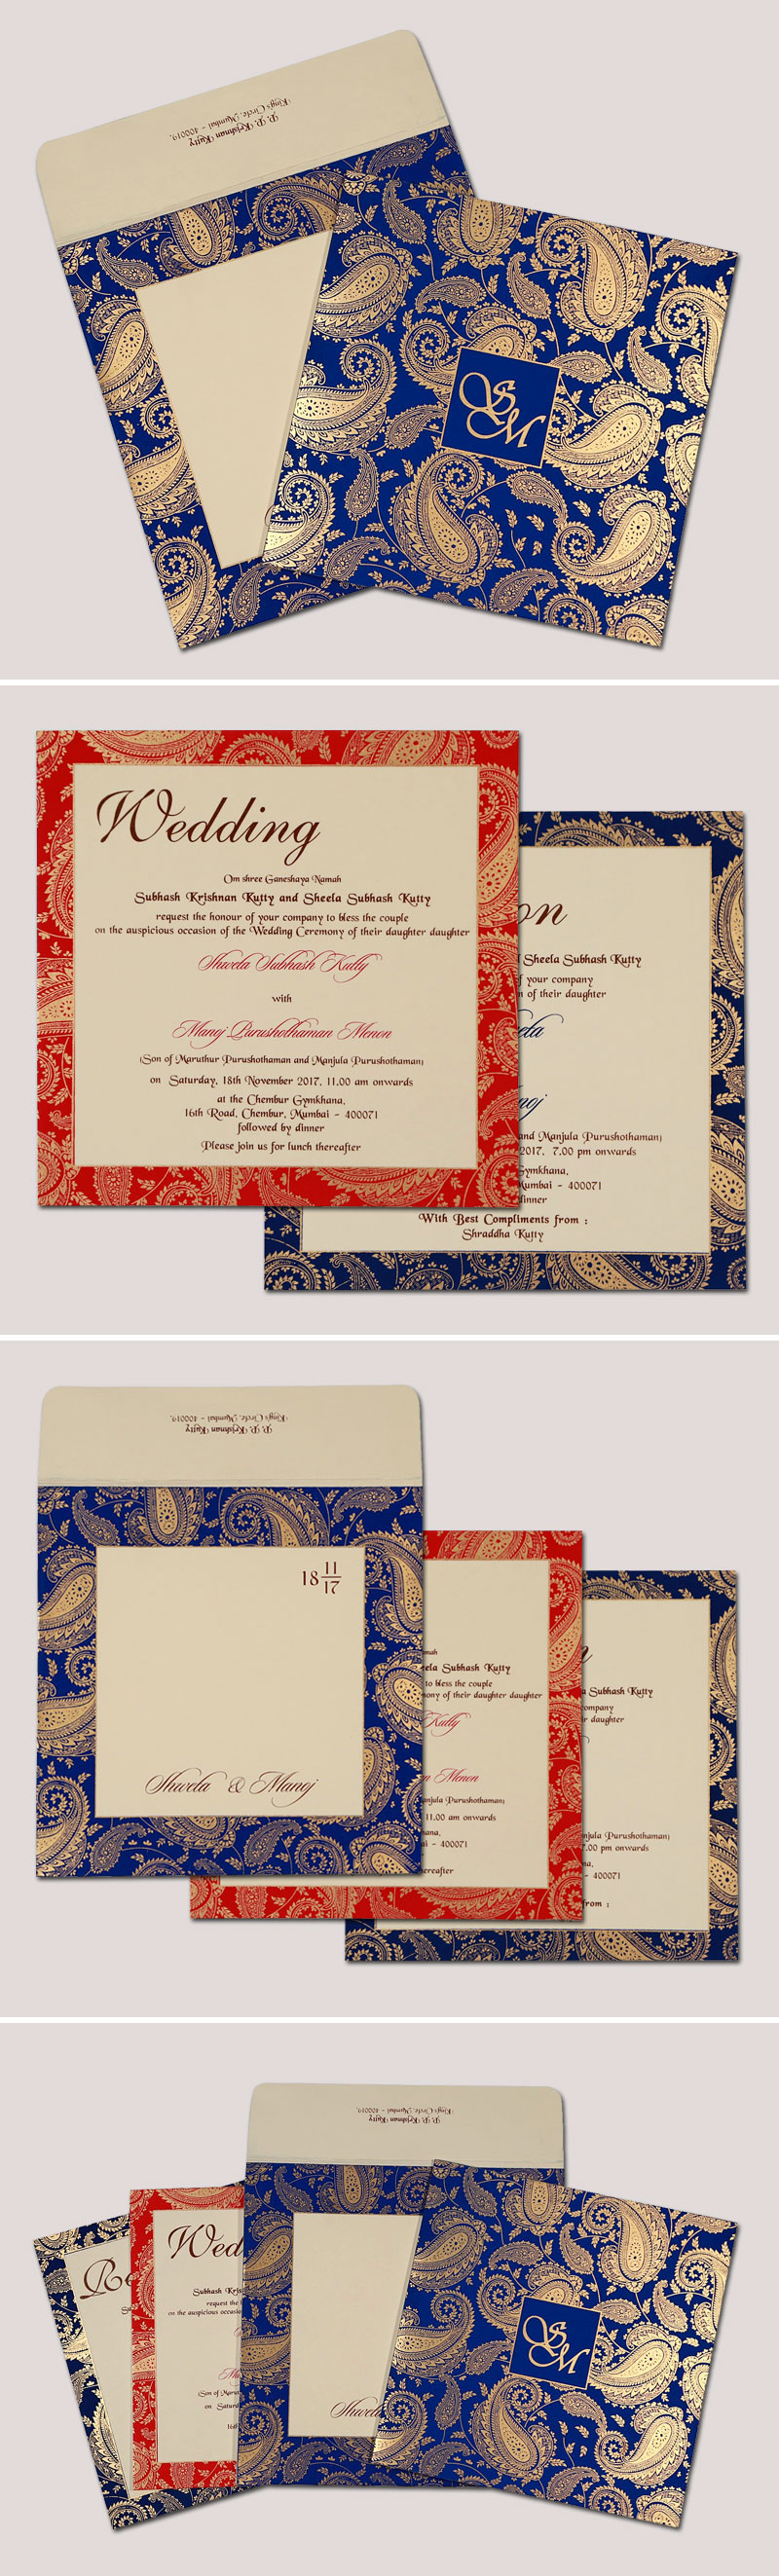 Online Indian Wedding invitations IN 1699